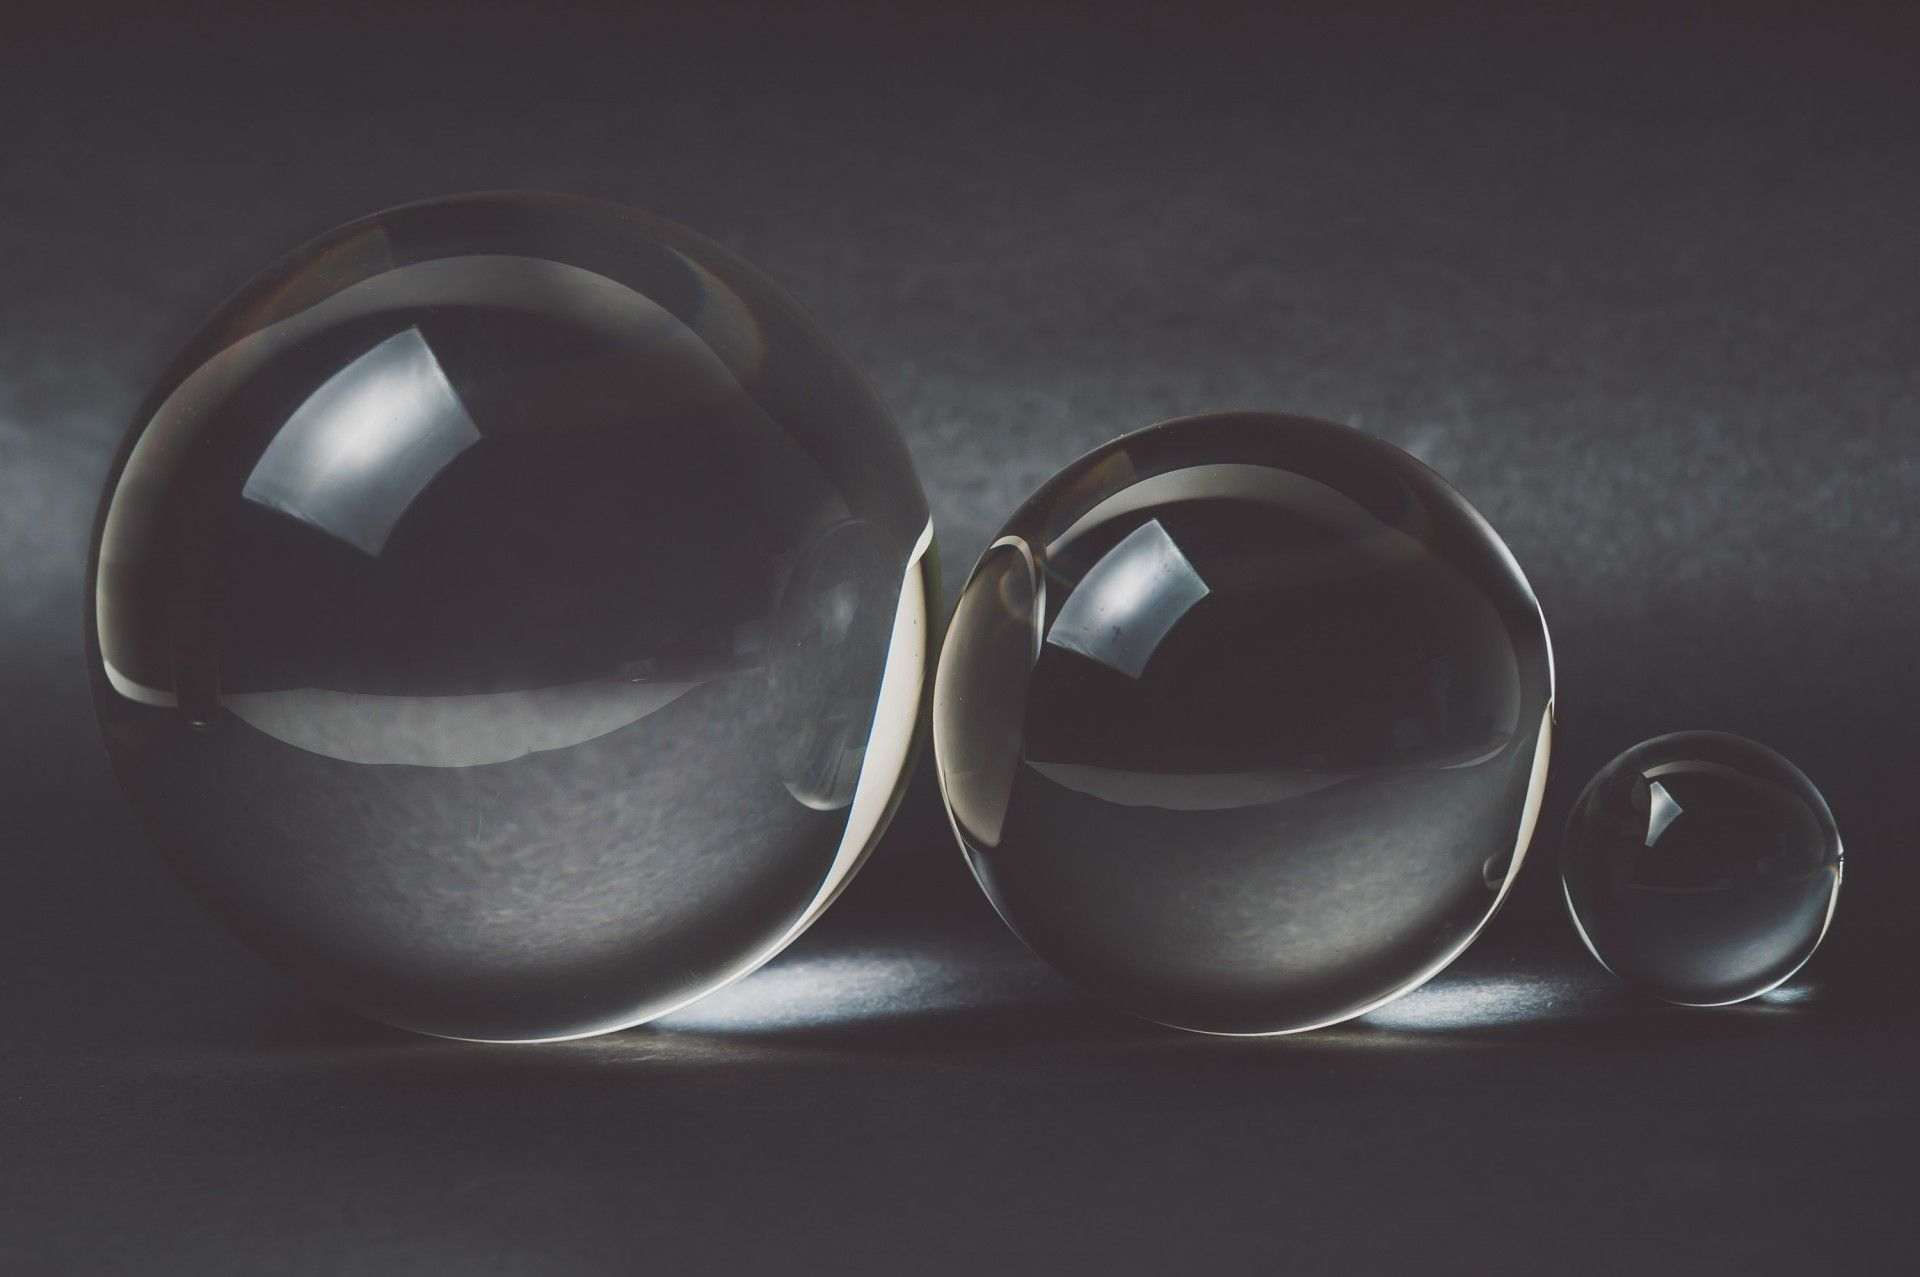 Glass Balls #Glassball #Glassballproject #Nikon #crystalball | Ideas ...